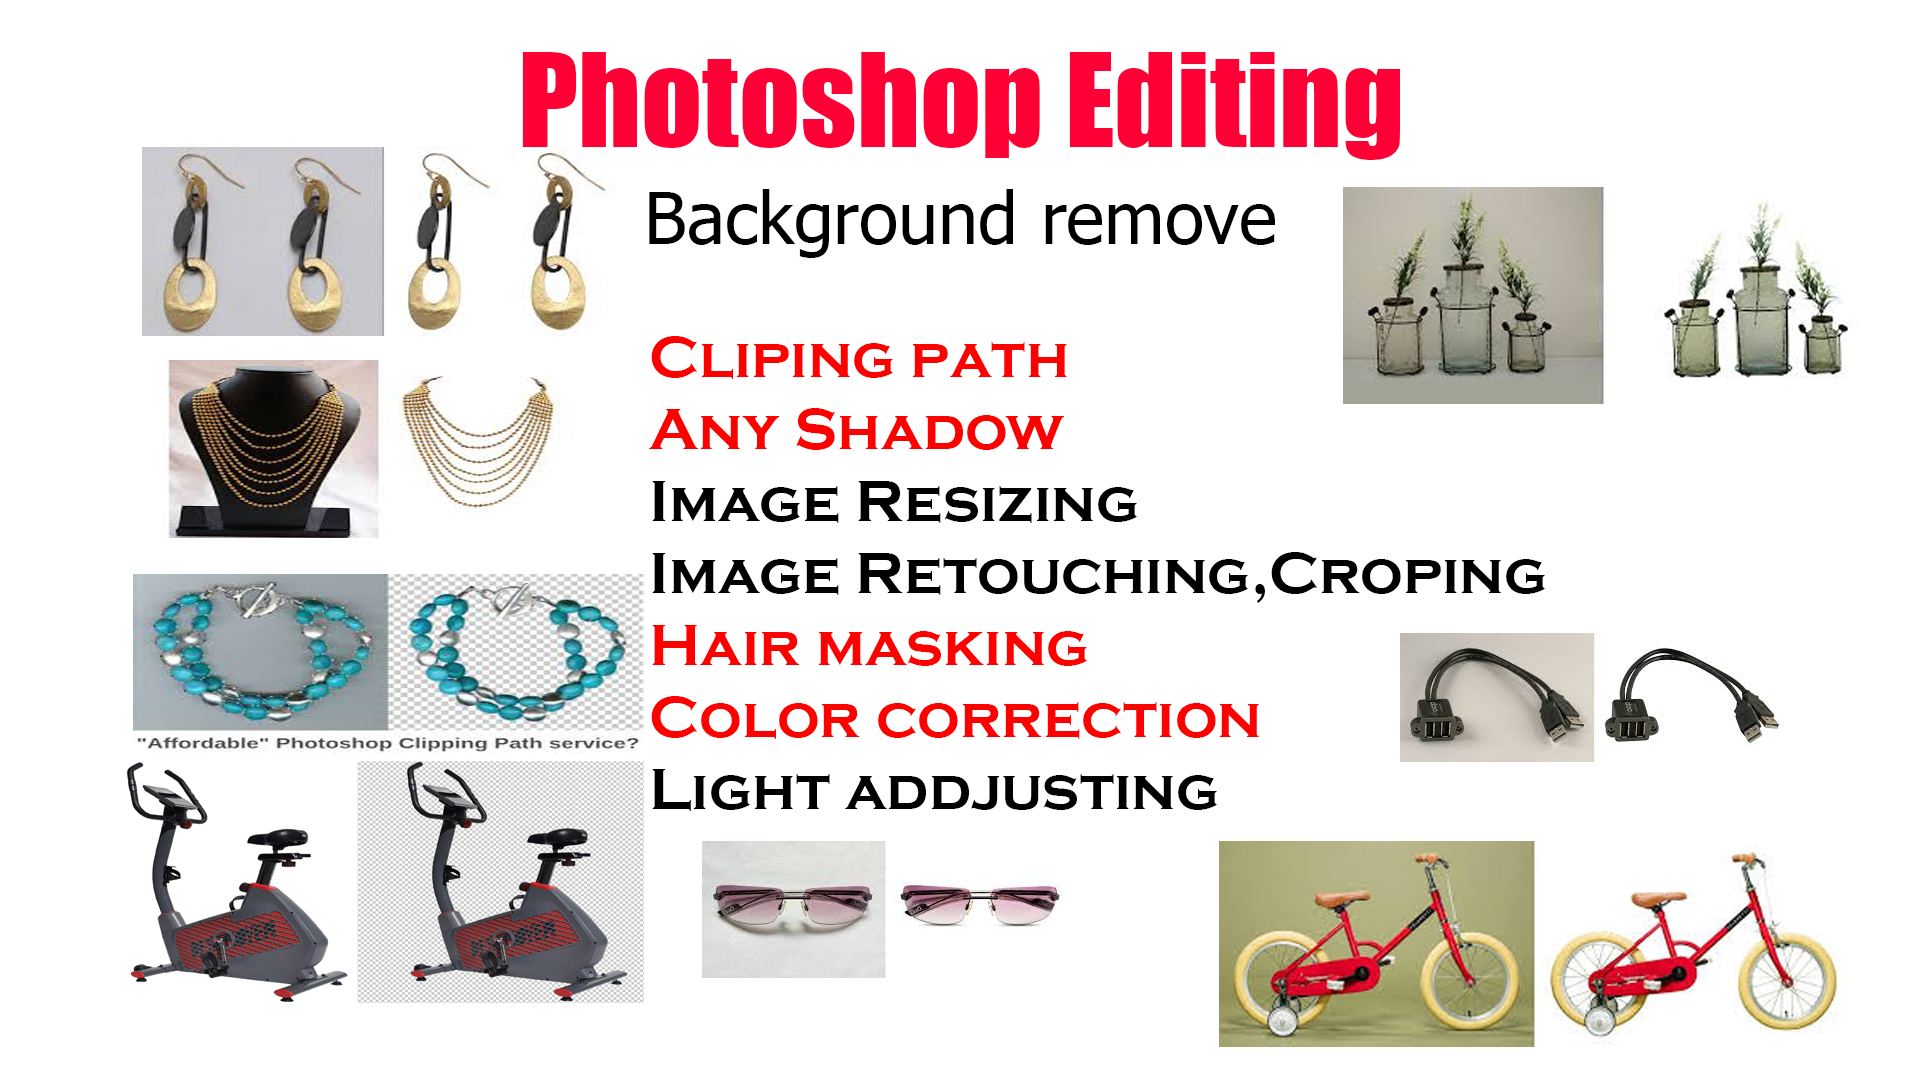 do any photo editing, background removal, resizing, retouching work